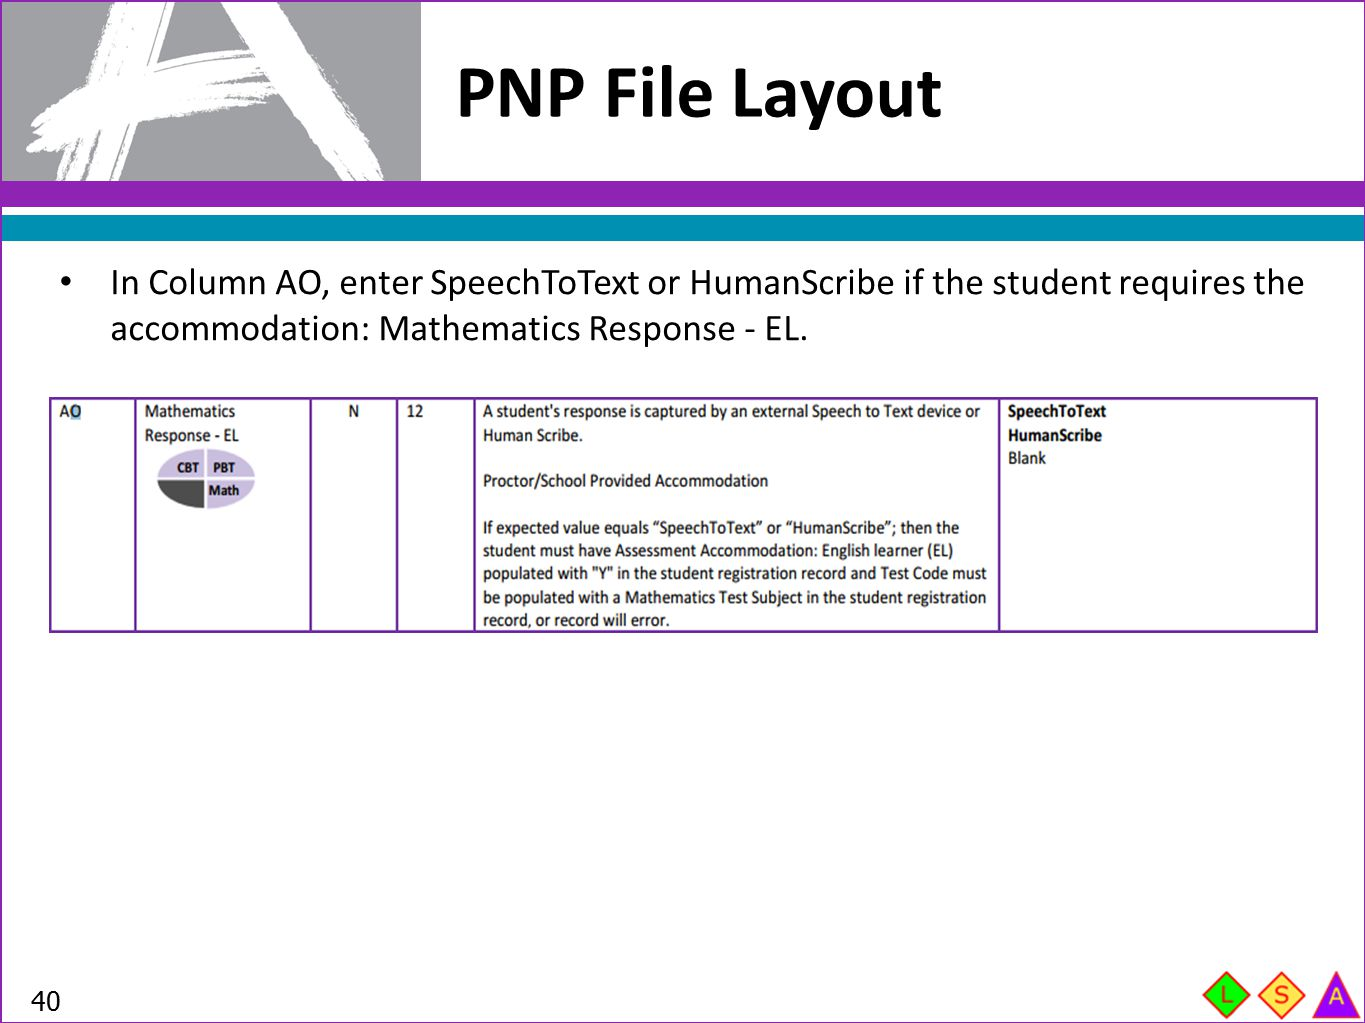 PNP File Layout In Column AO, enter SpeechToText or HumanScribe if the student requires the accommodation: Mathematics Response - EL.